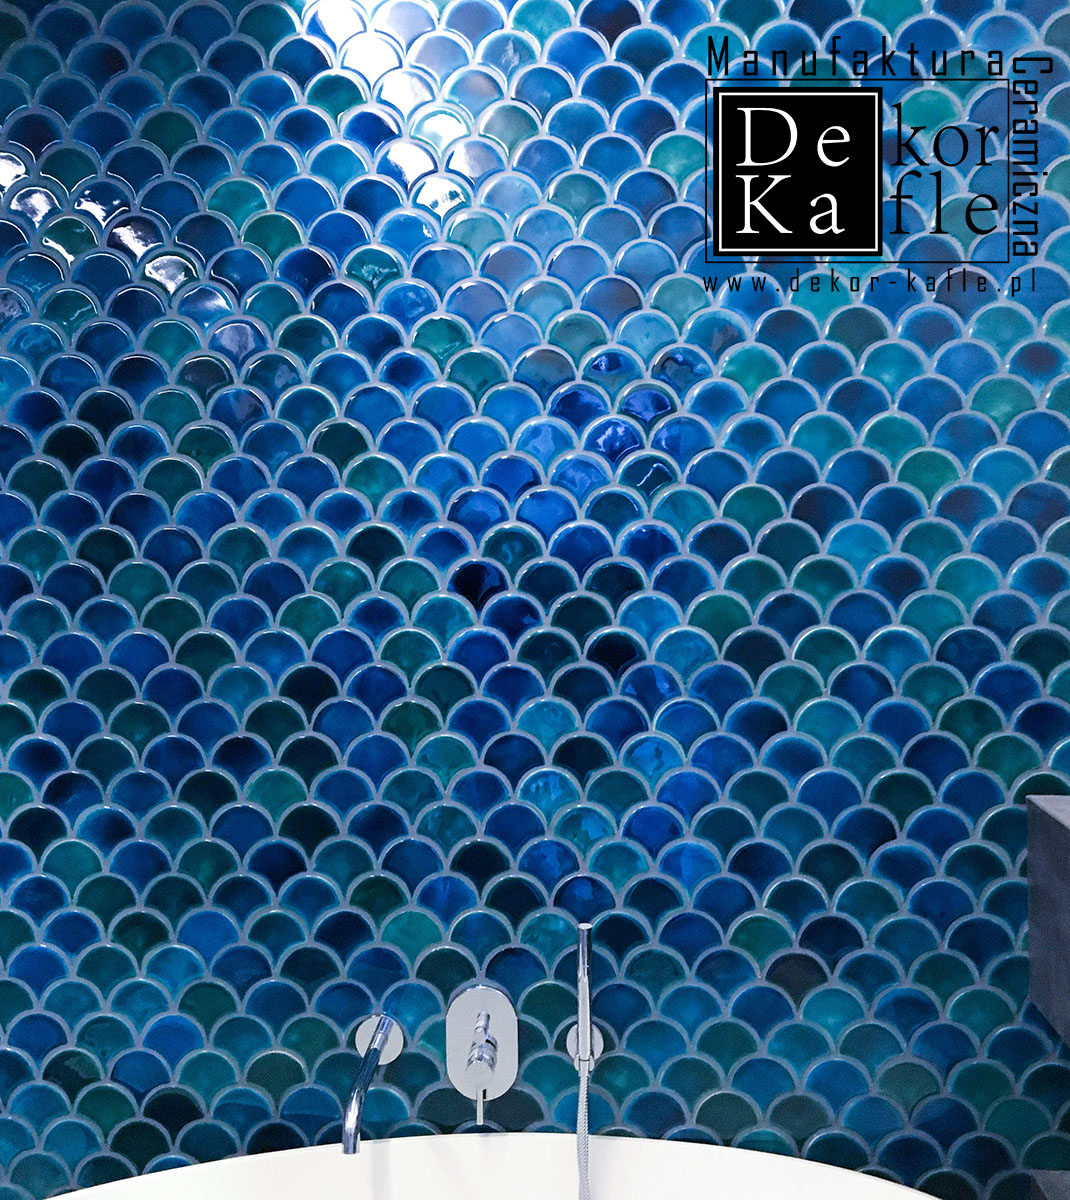 Fish Scales tiles, Turquoise Crackle